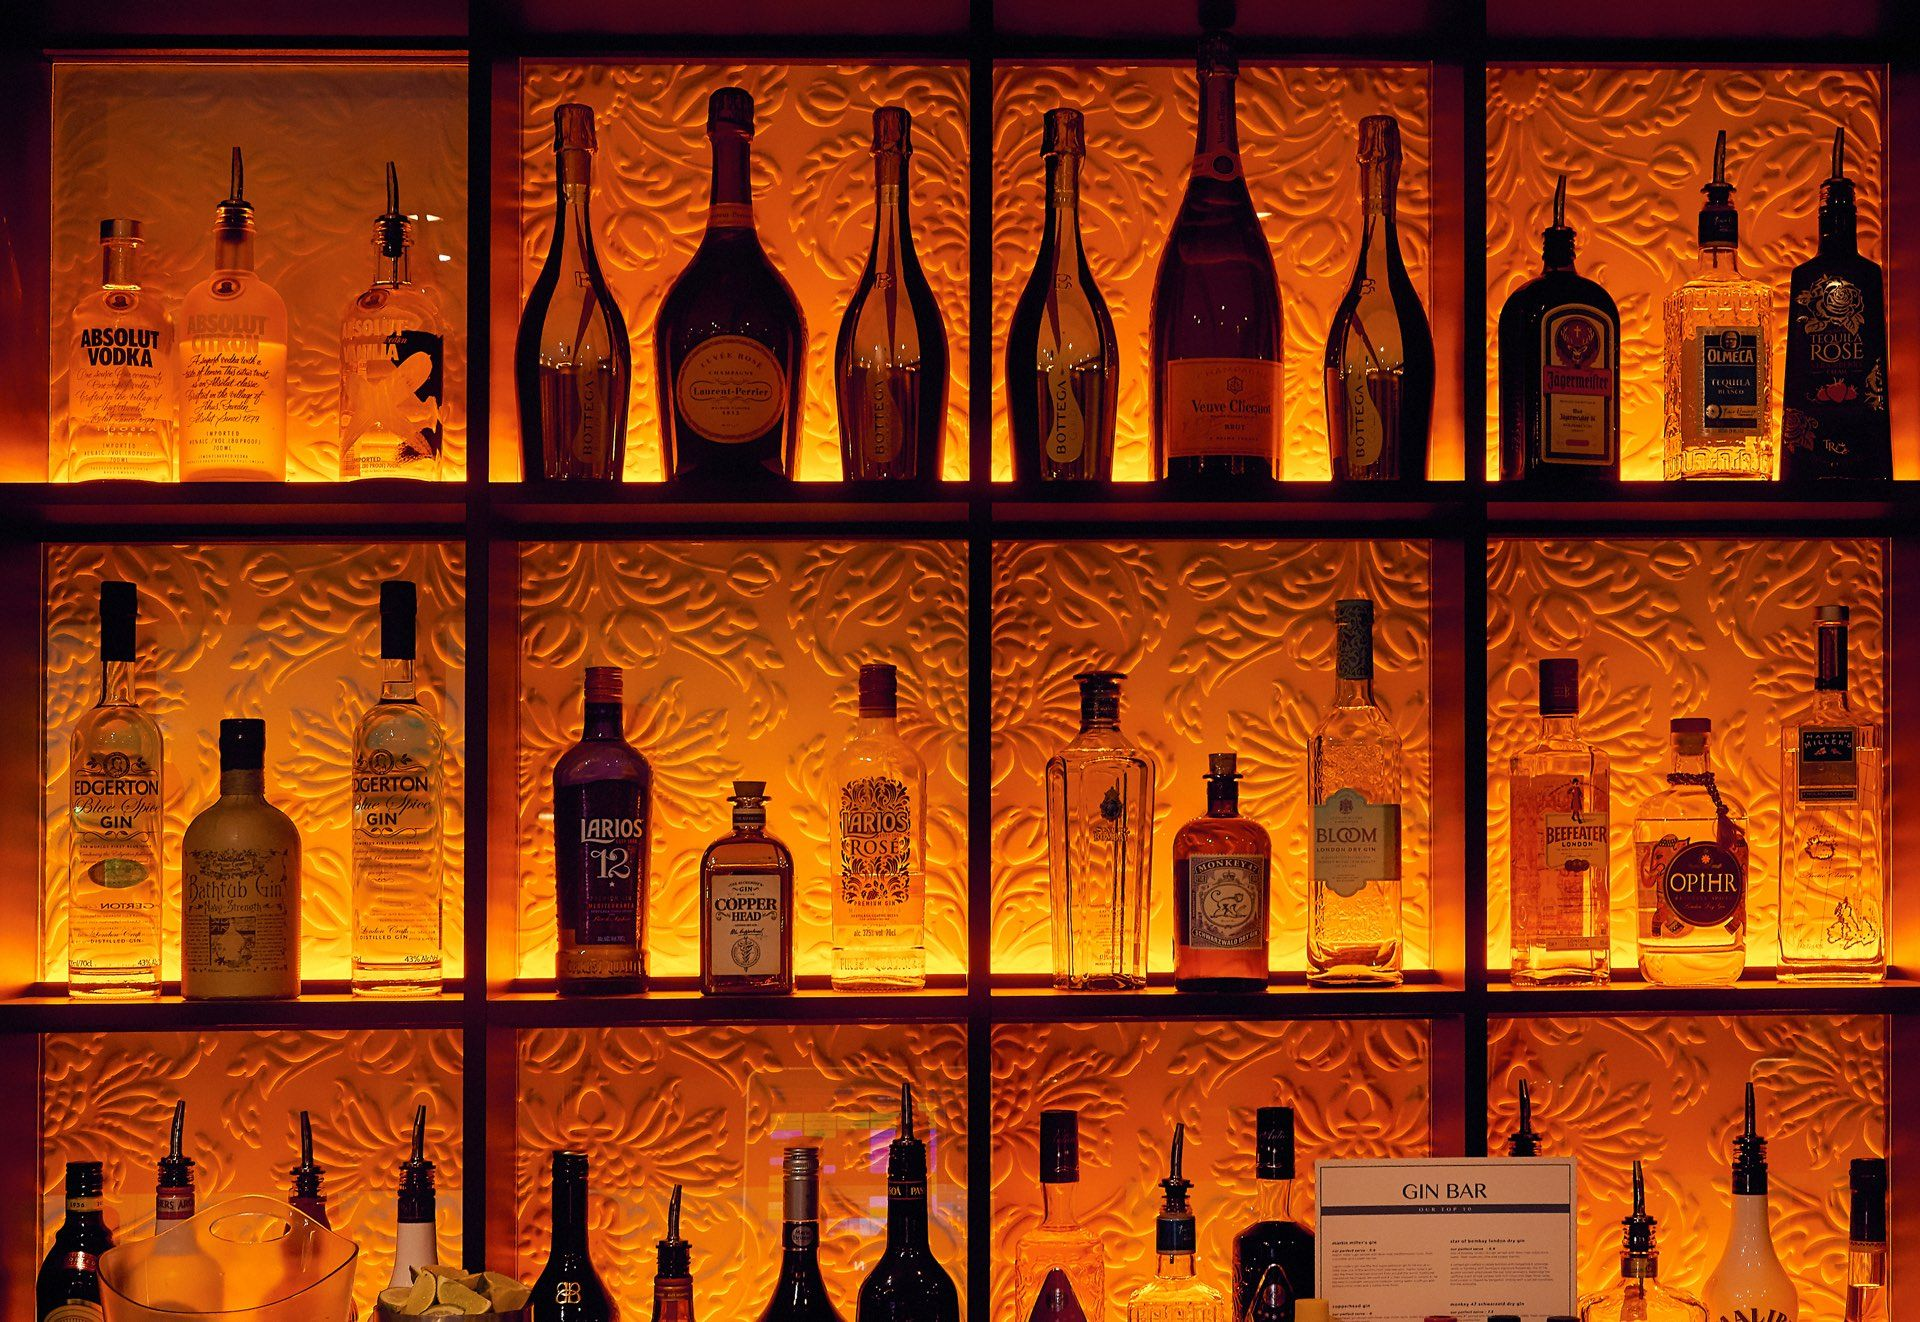 Bottles of drink behind bar